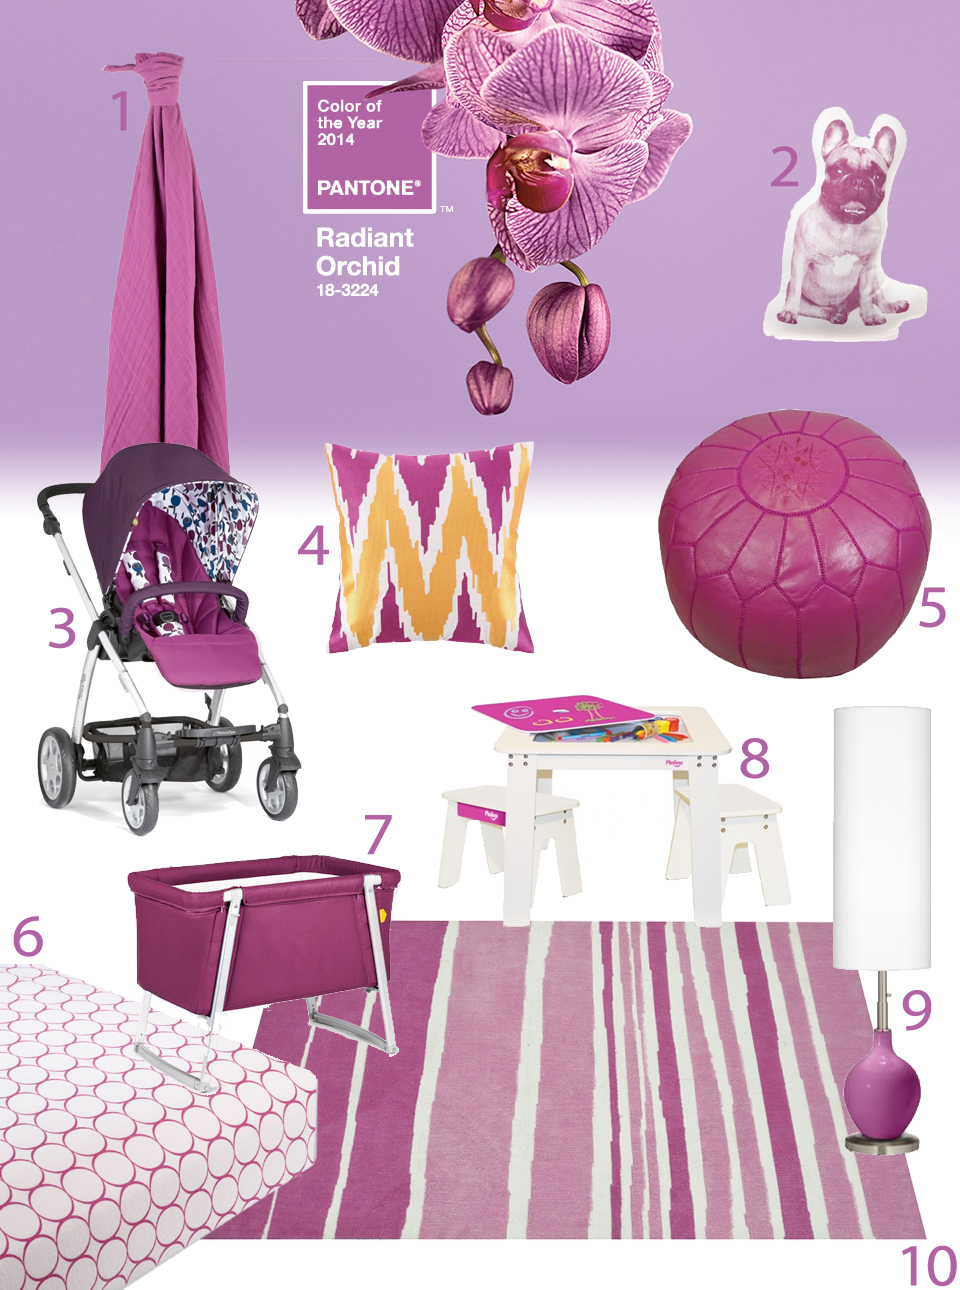 Radiant Orchid Color of the Year 2014 home and kids nursery